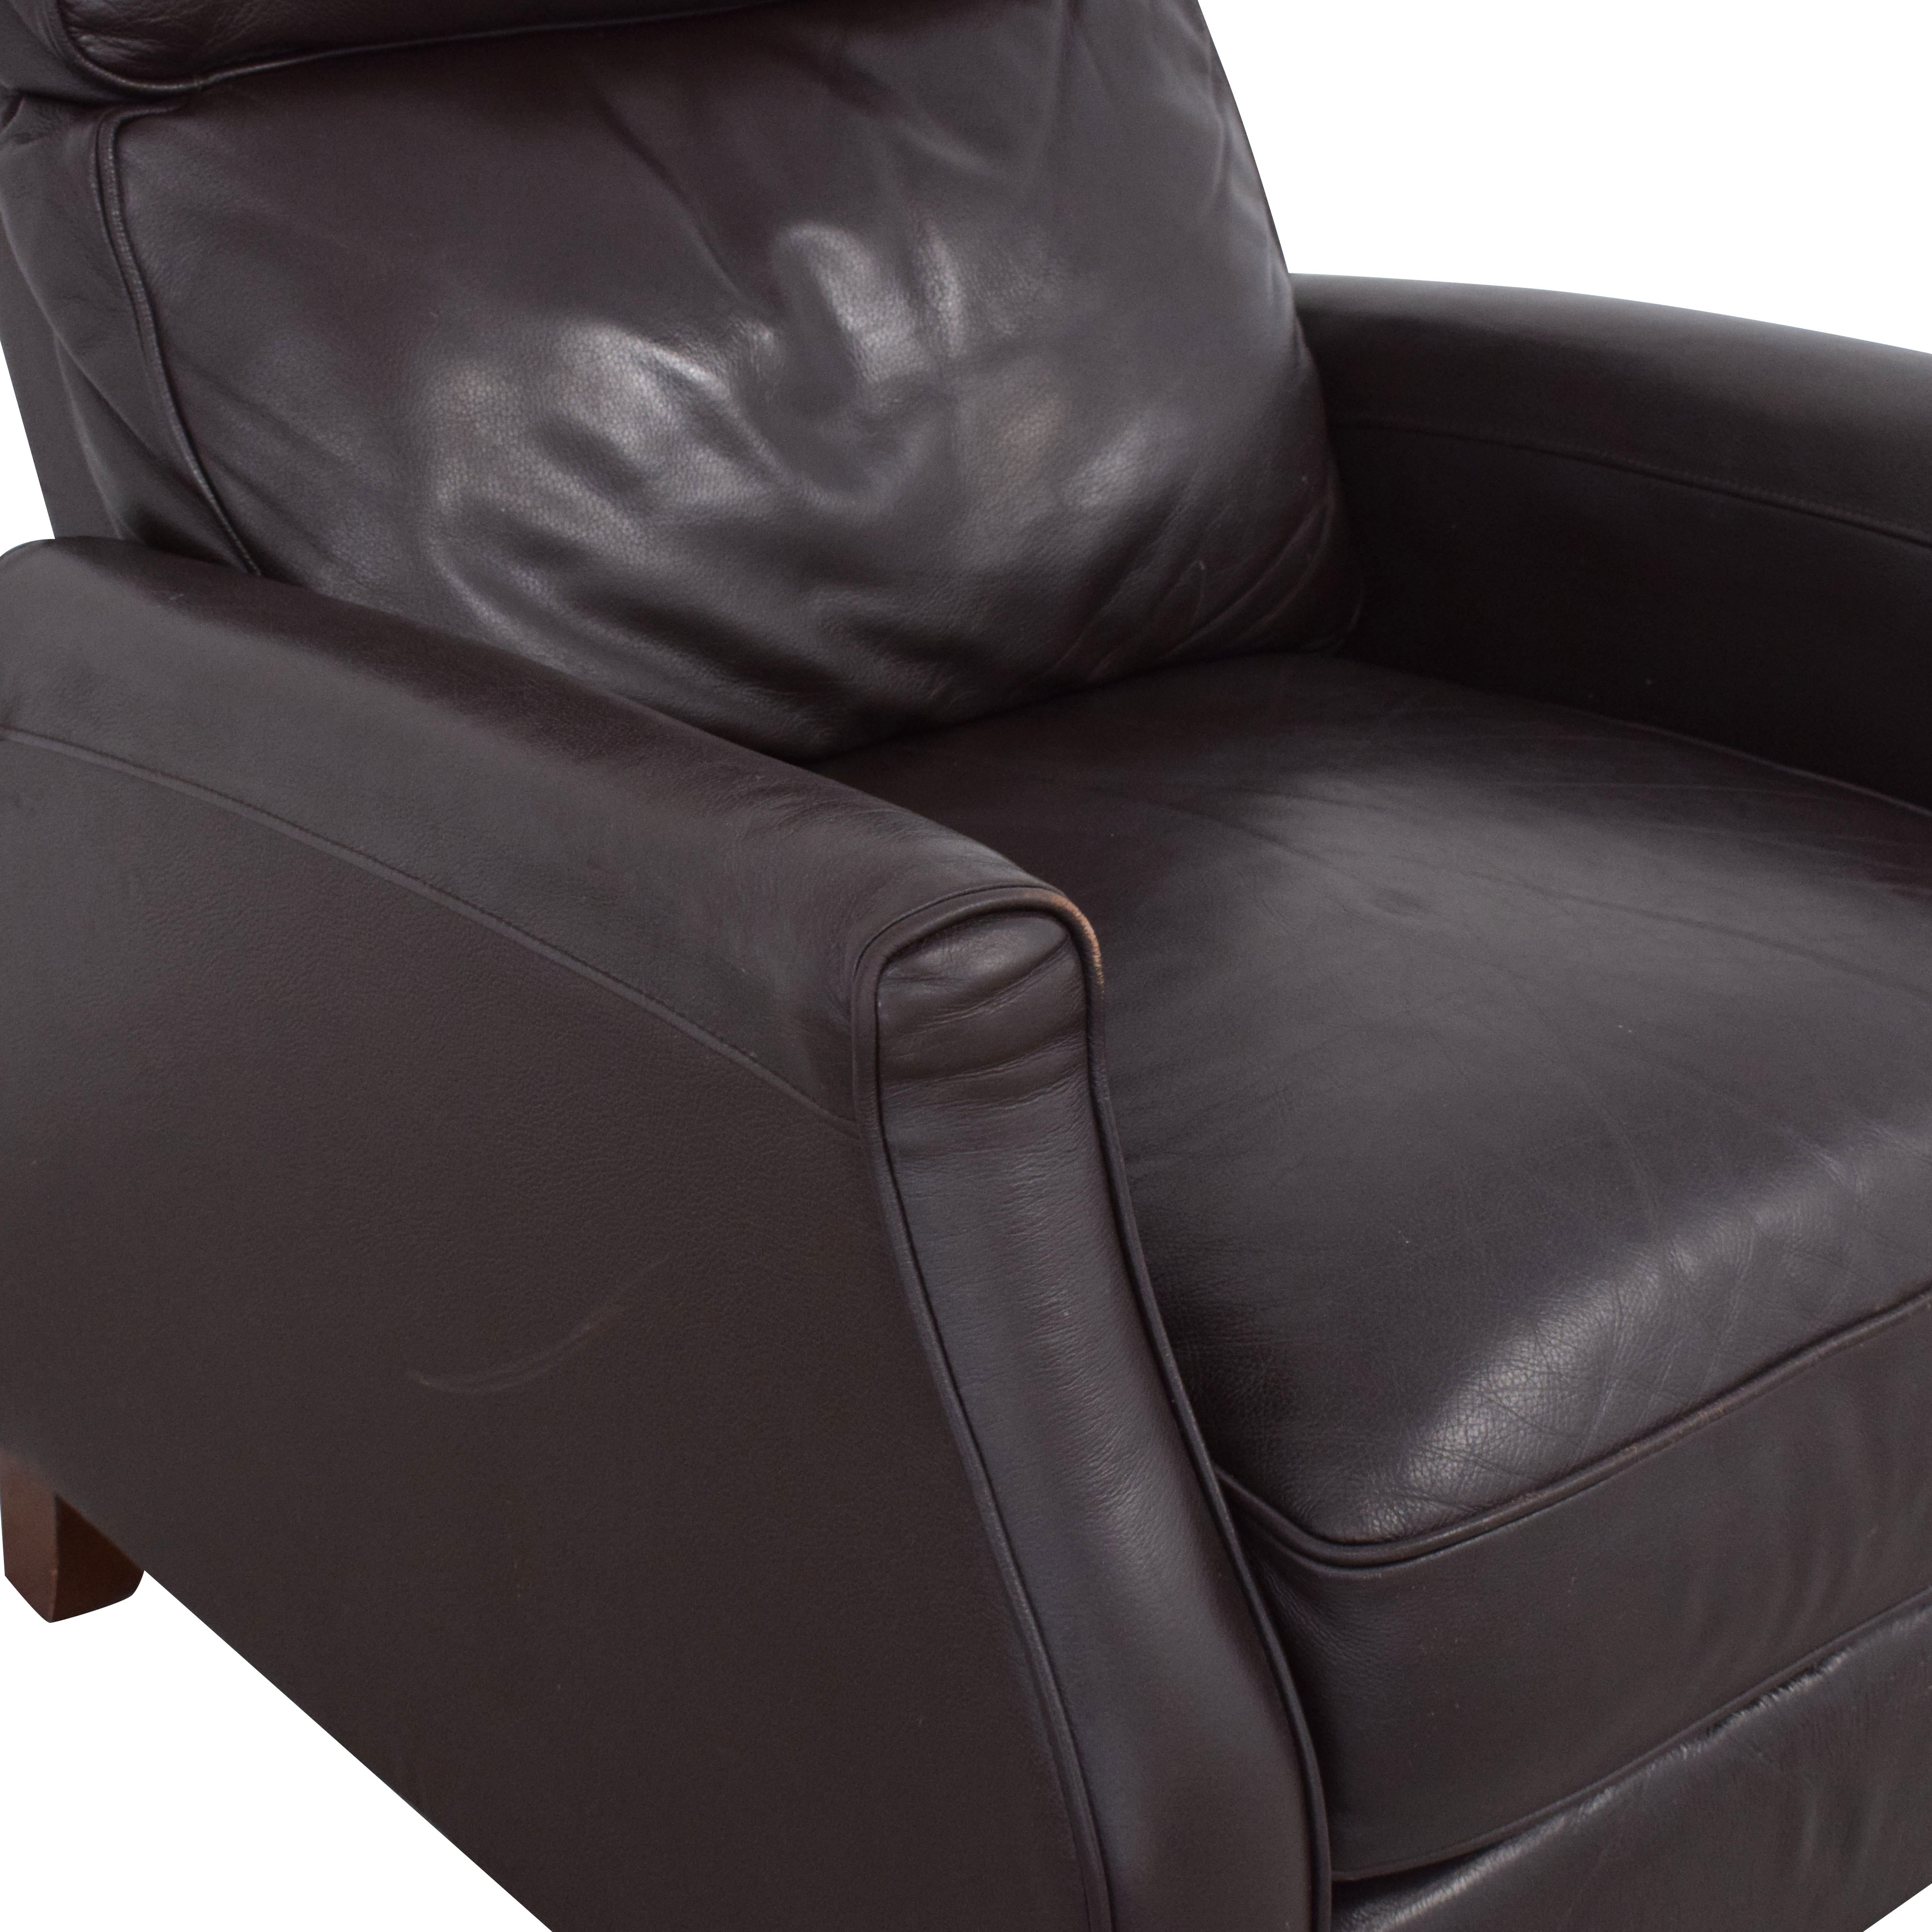 Macy's Macy's Leather Recliner Armchair pa